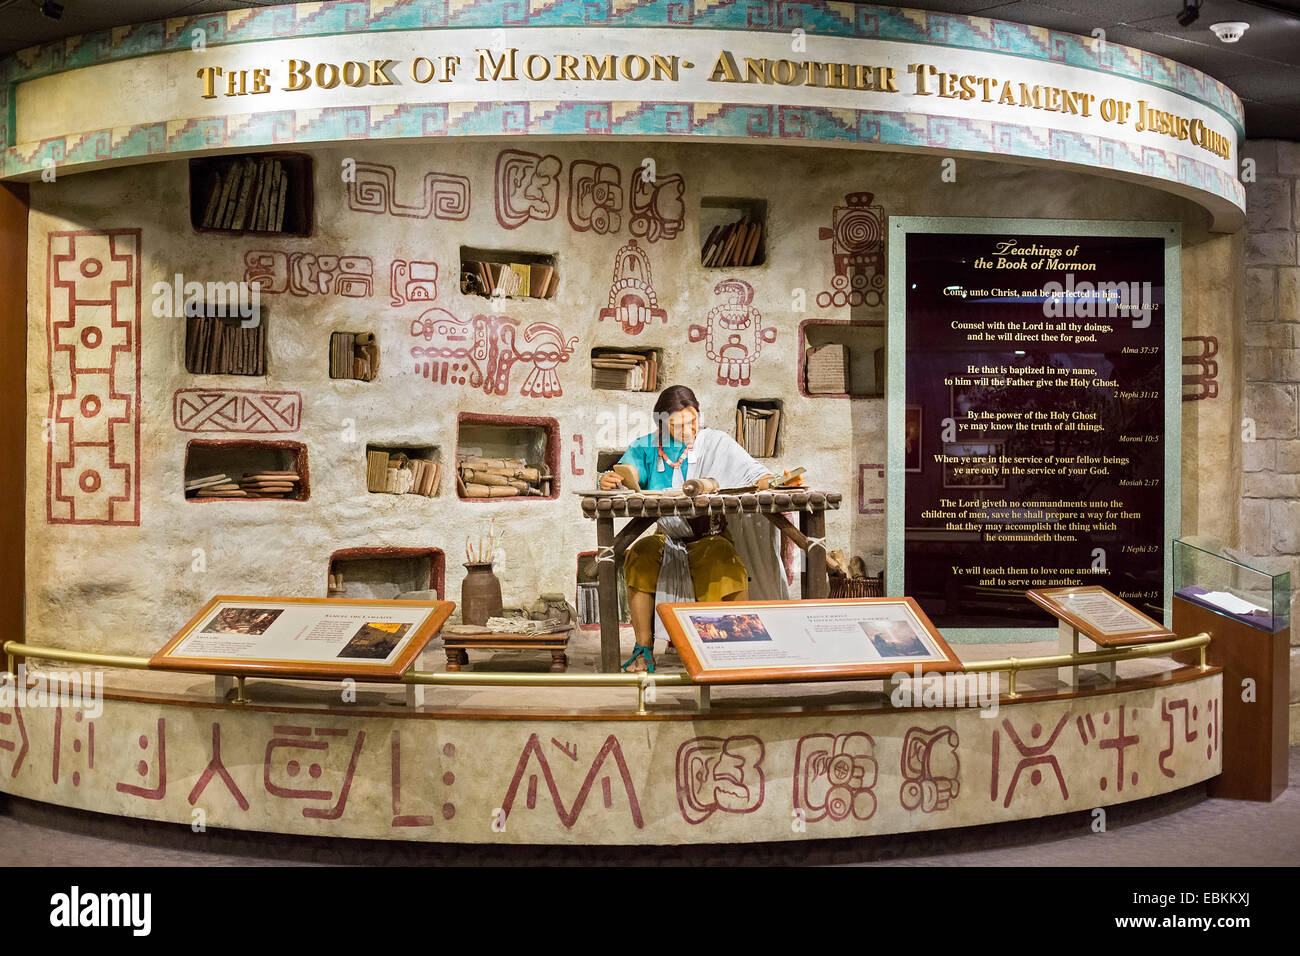 Salt Lake City, Utah - A display about the Book of Mormon at a Mormon visitor center in Temple Square. - Stock Image